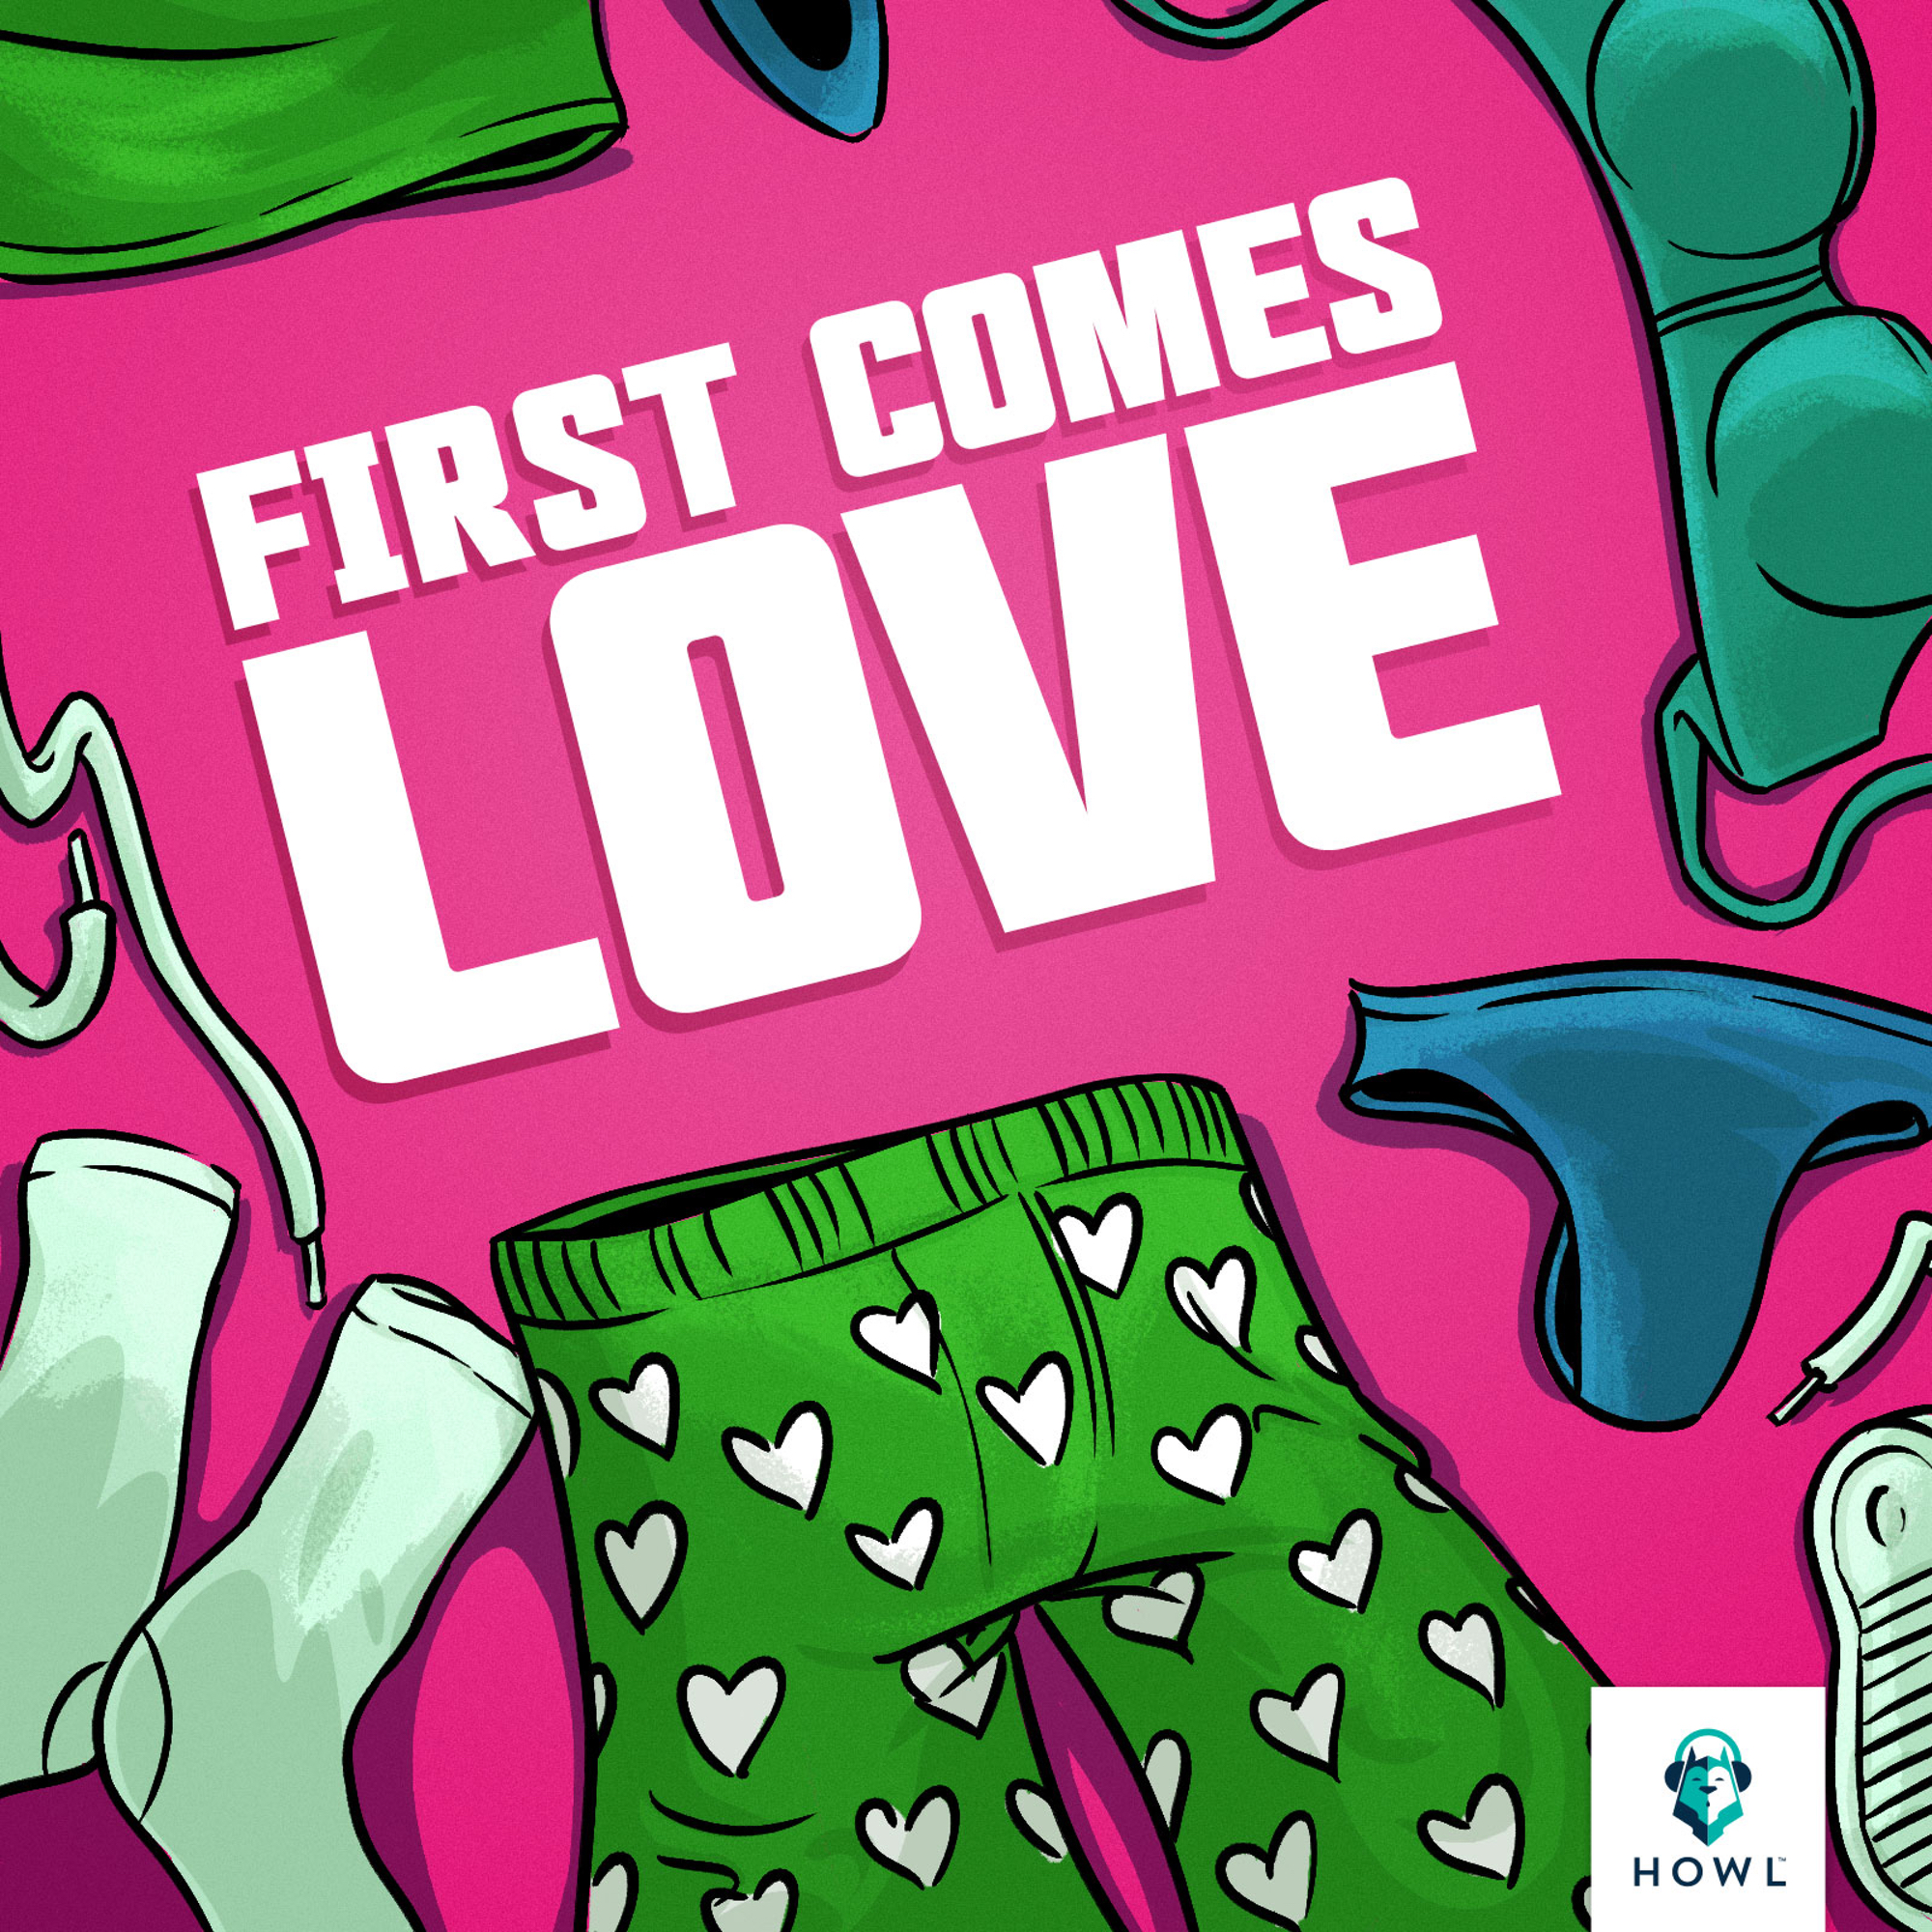 First Comes Love Square.jpg